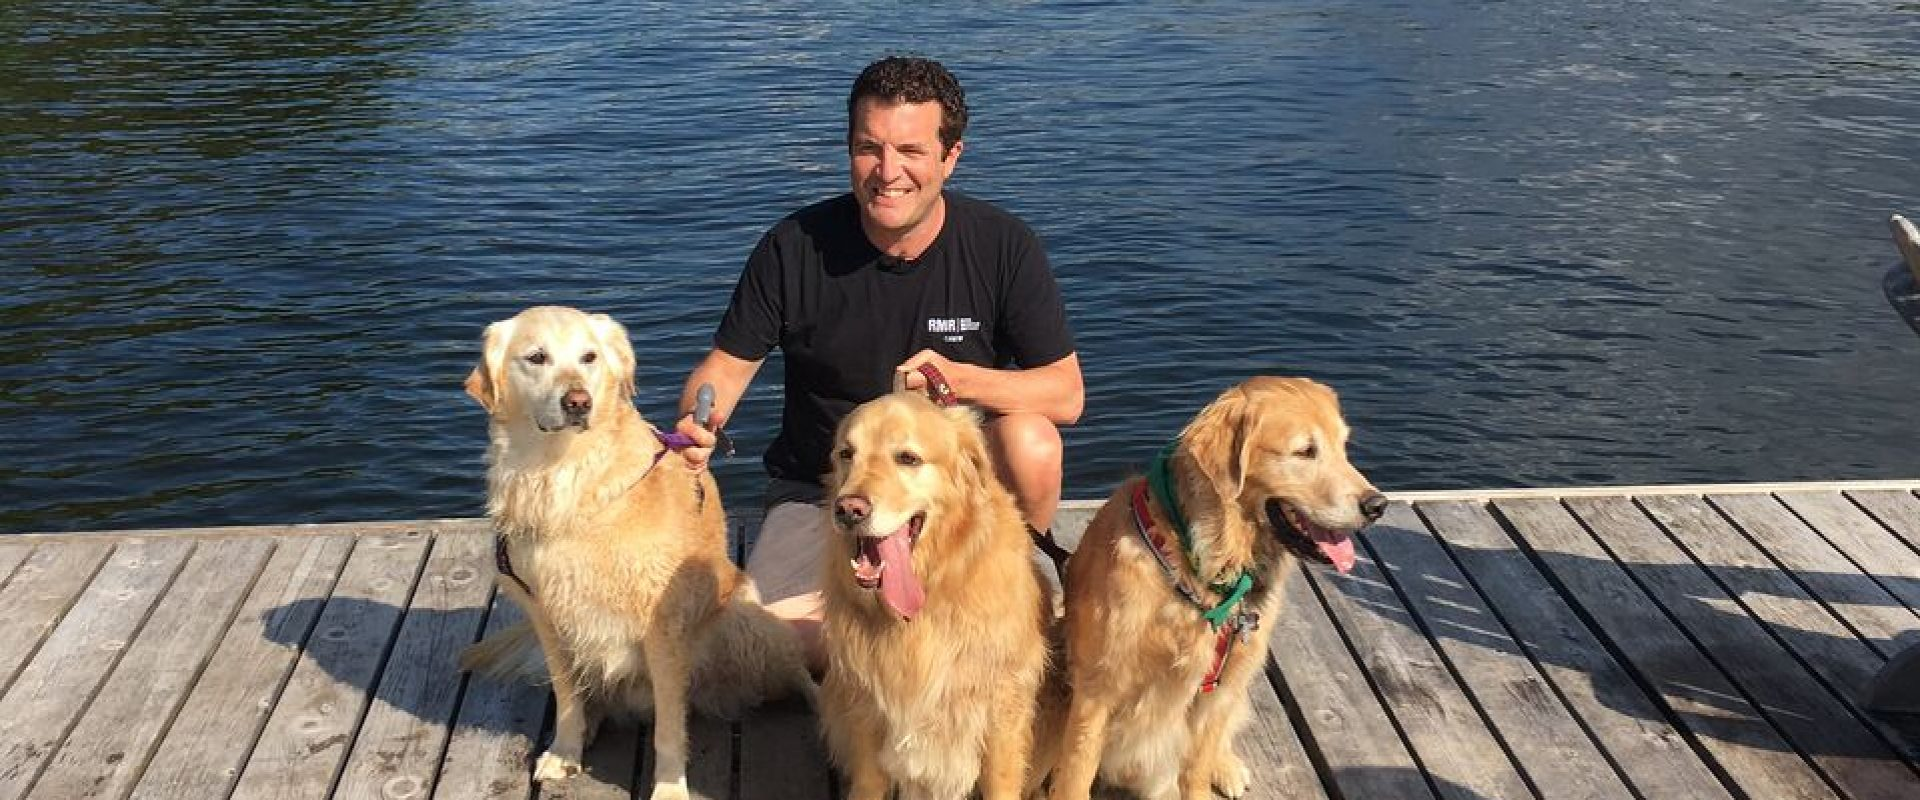 Rick Mercer with Goldens by the water